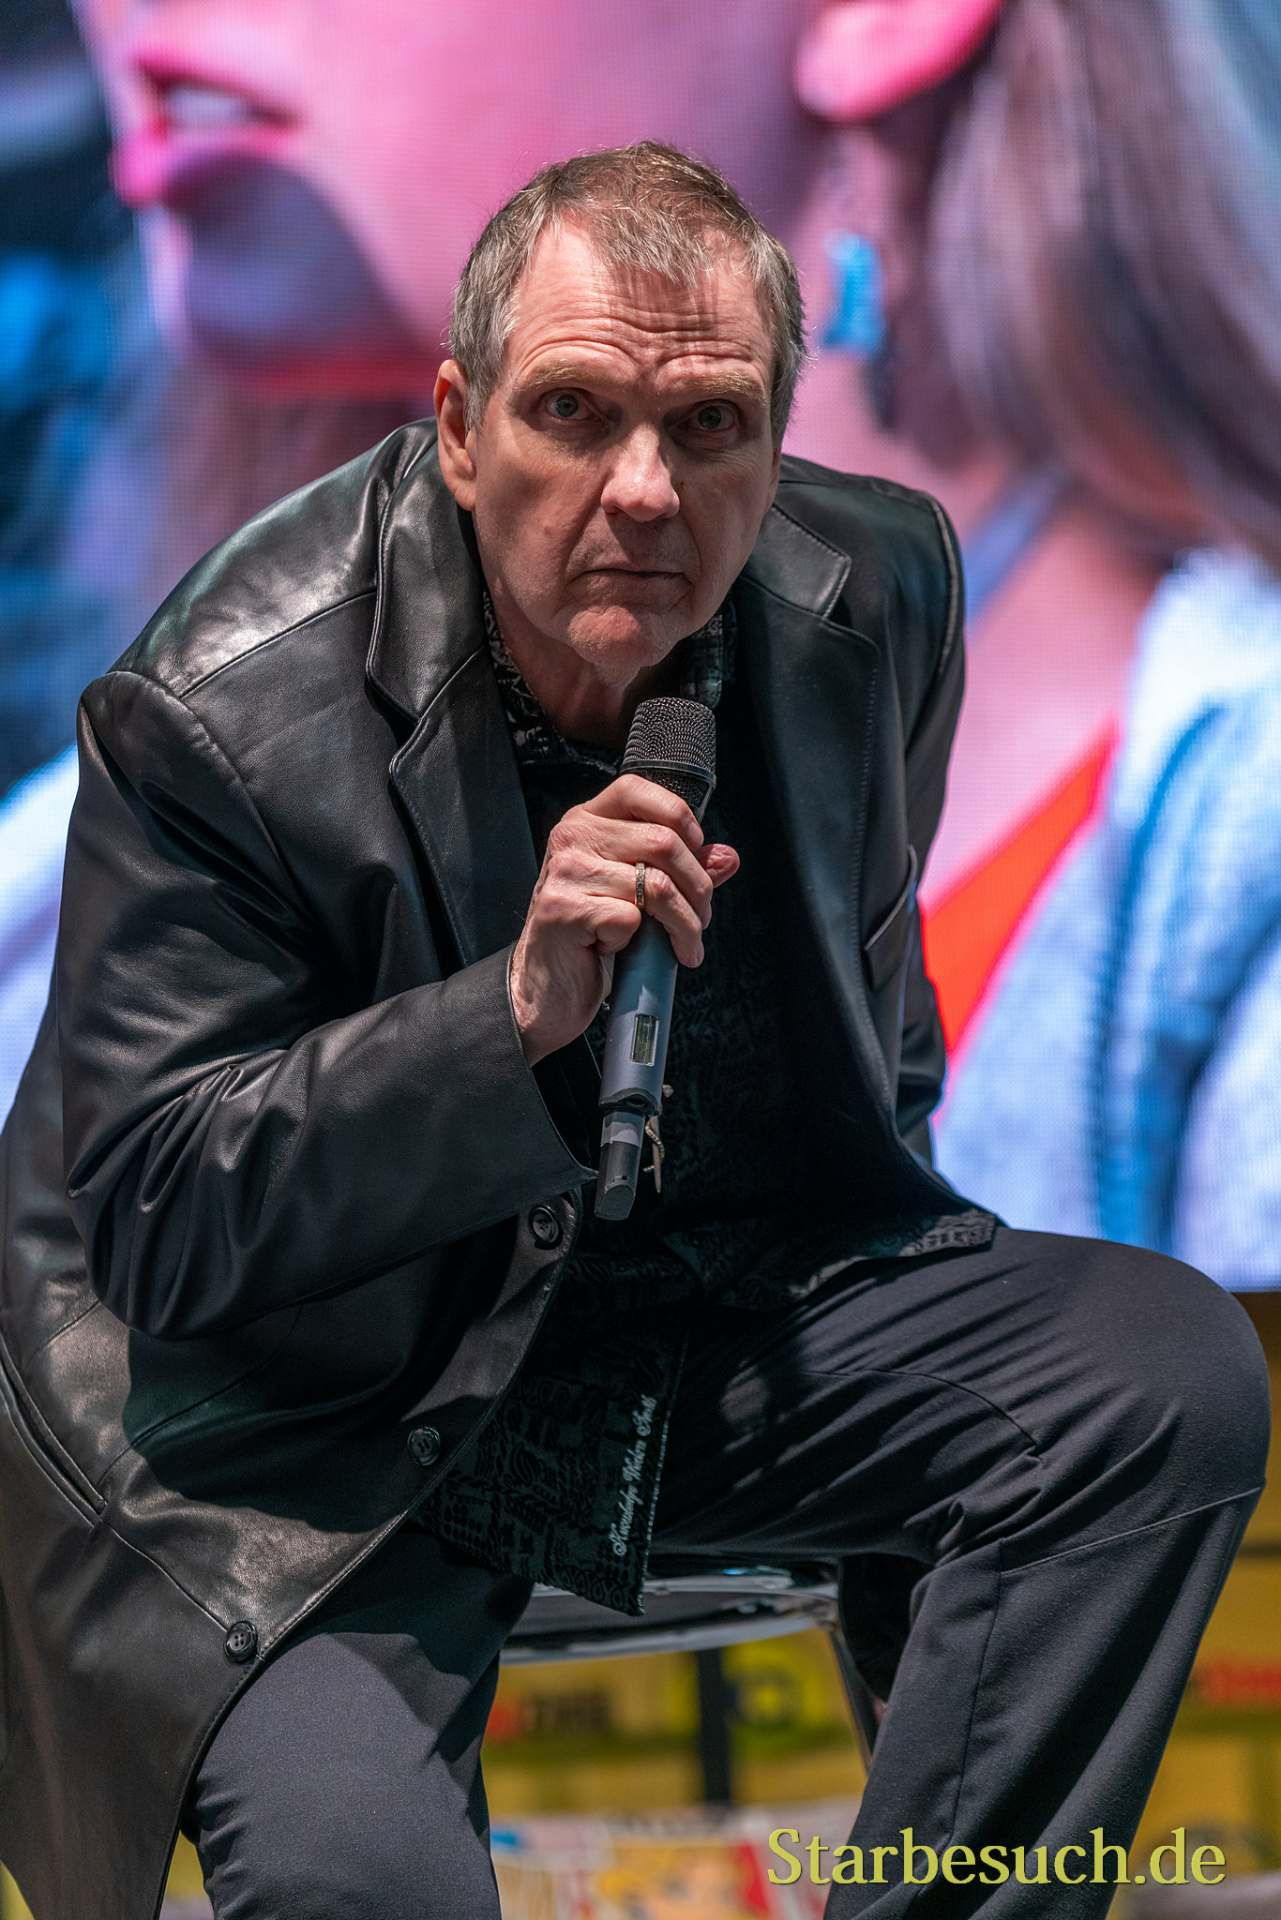 DORTMUND, GERMANY - December 8th 2019: Meat Loaf at German Comic Con Dortmund